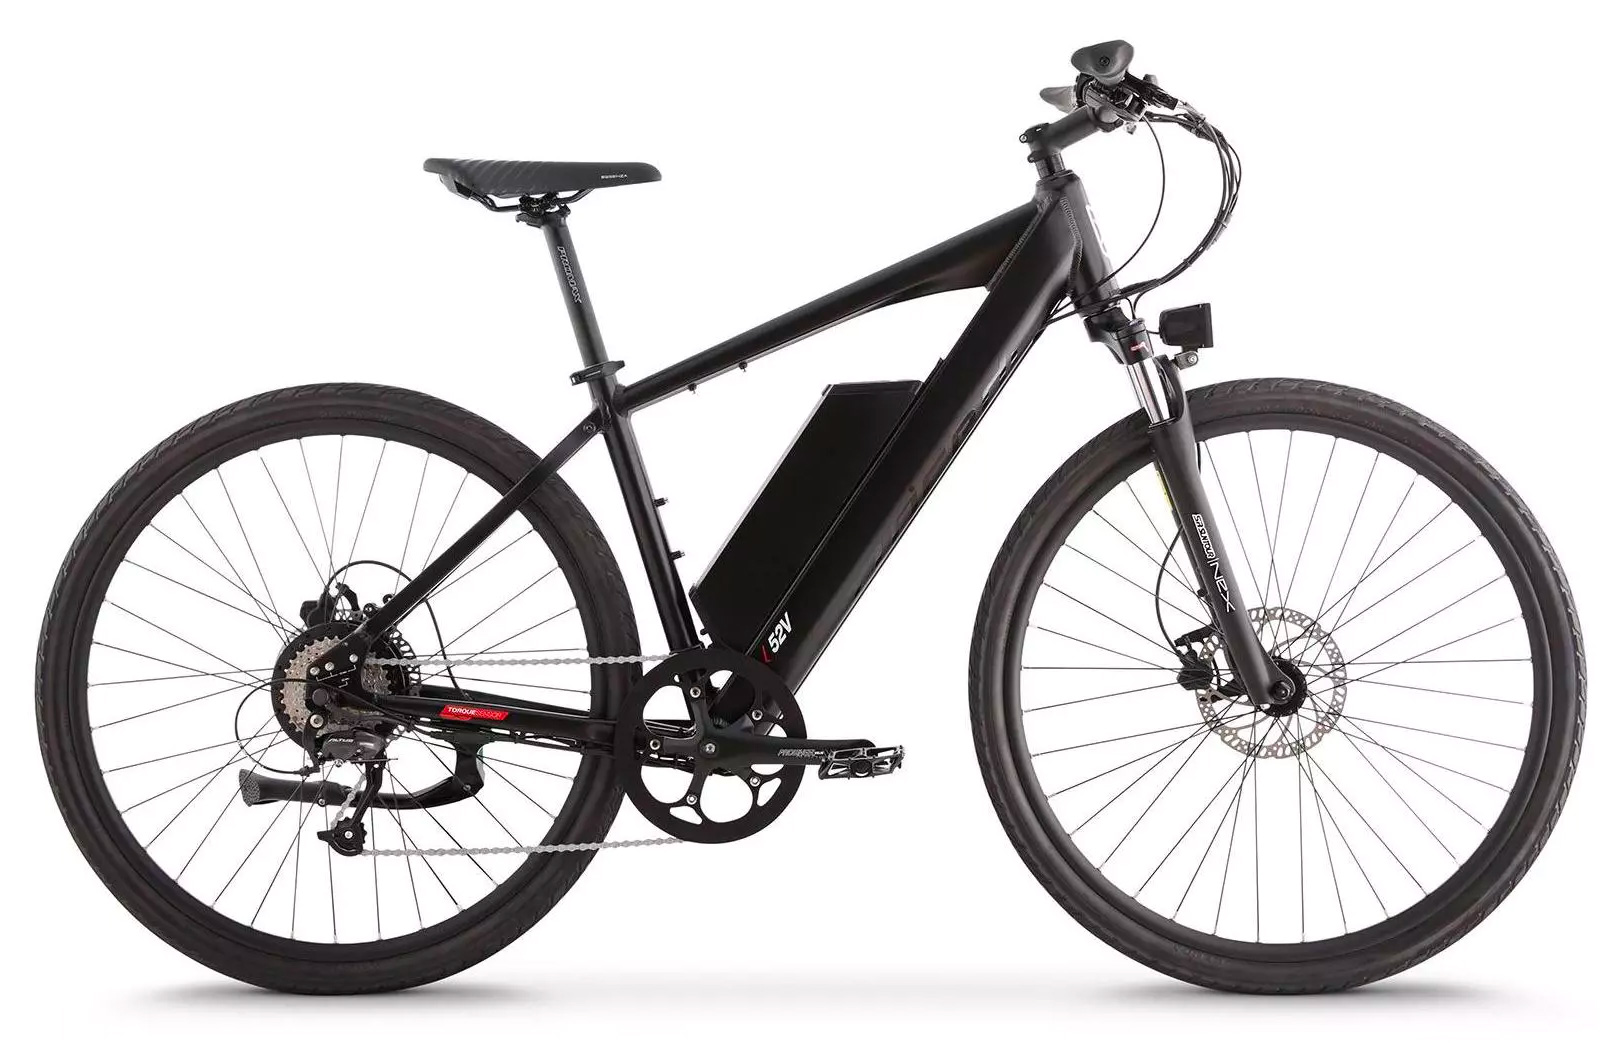 This New Juiced CrossCurrent S2 E-Bike Is Fast & Fun at werd.com